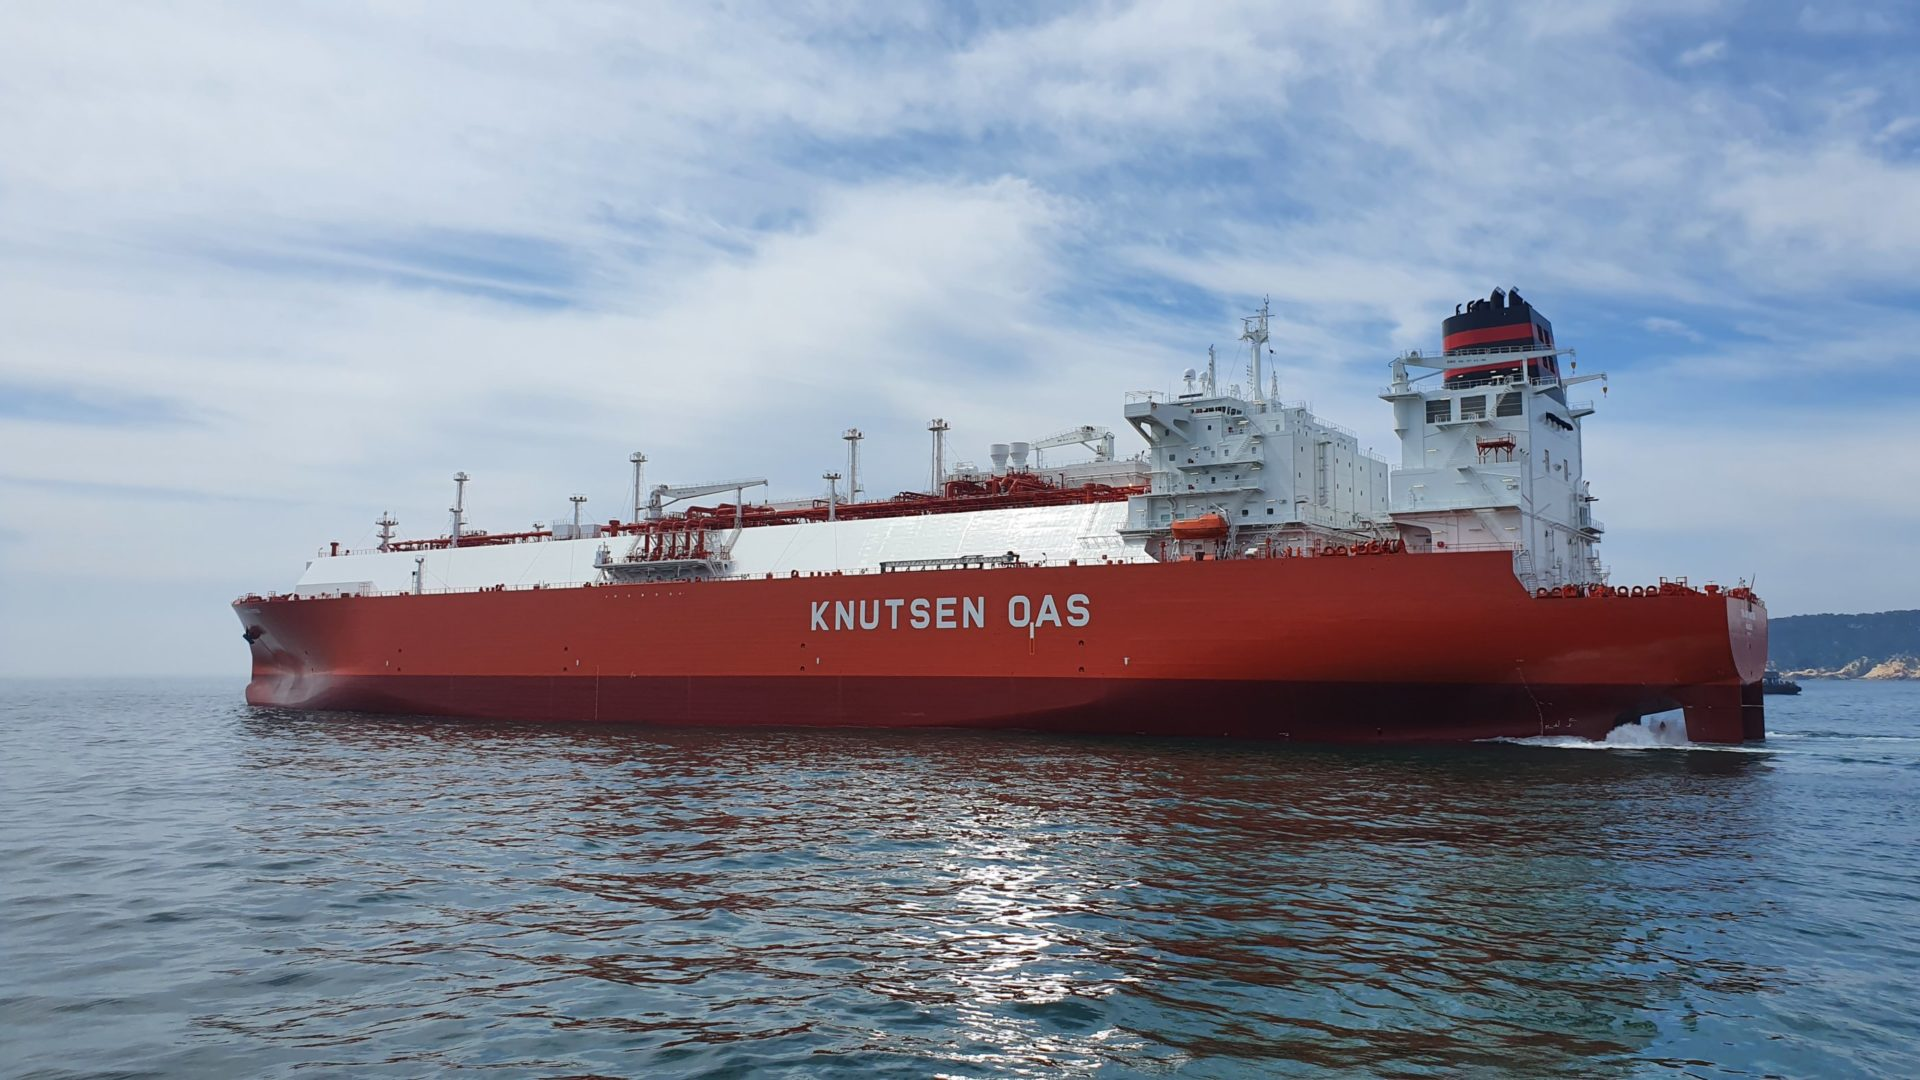 Knutsen LNG carrier